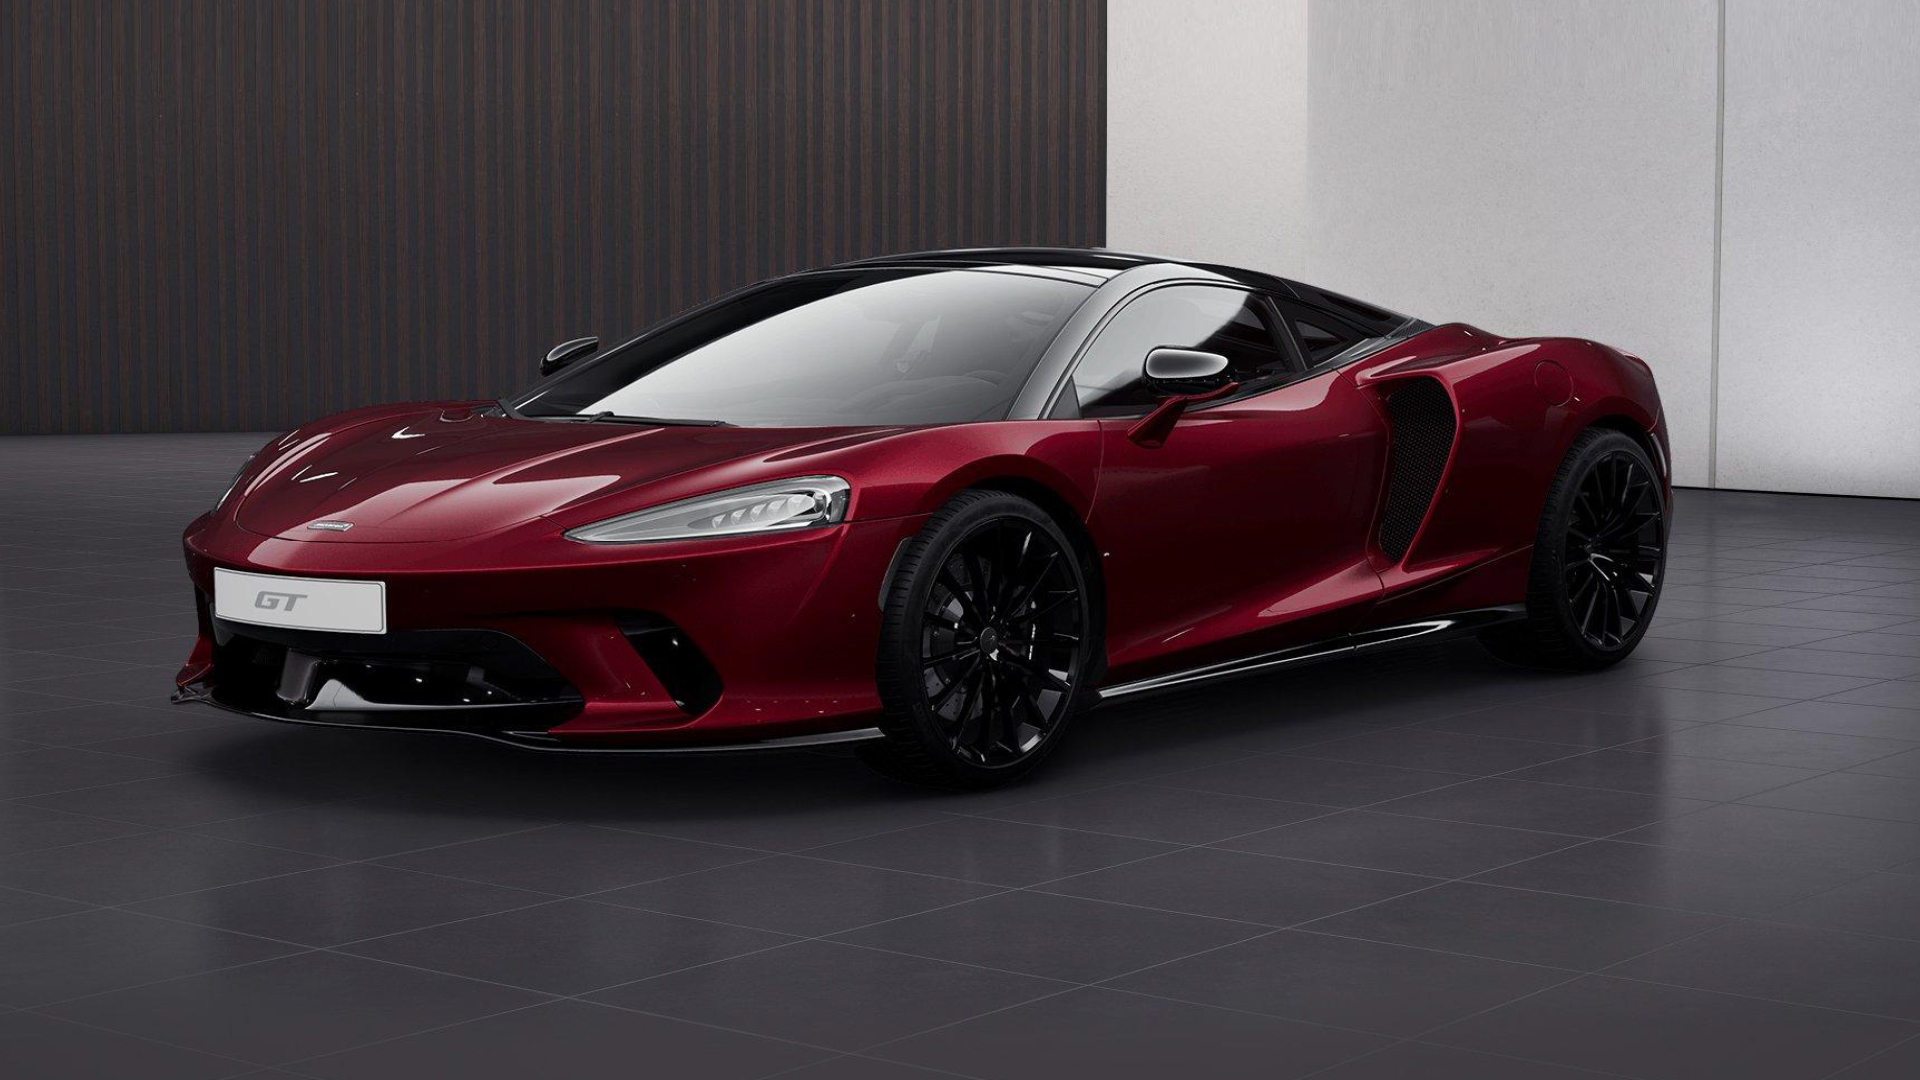 New McLaren GT Amaranth Red